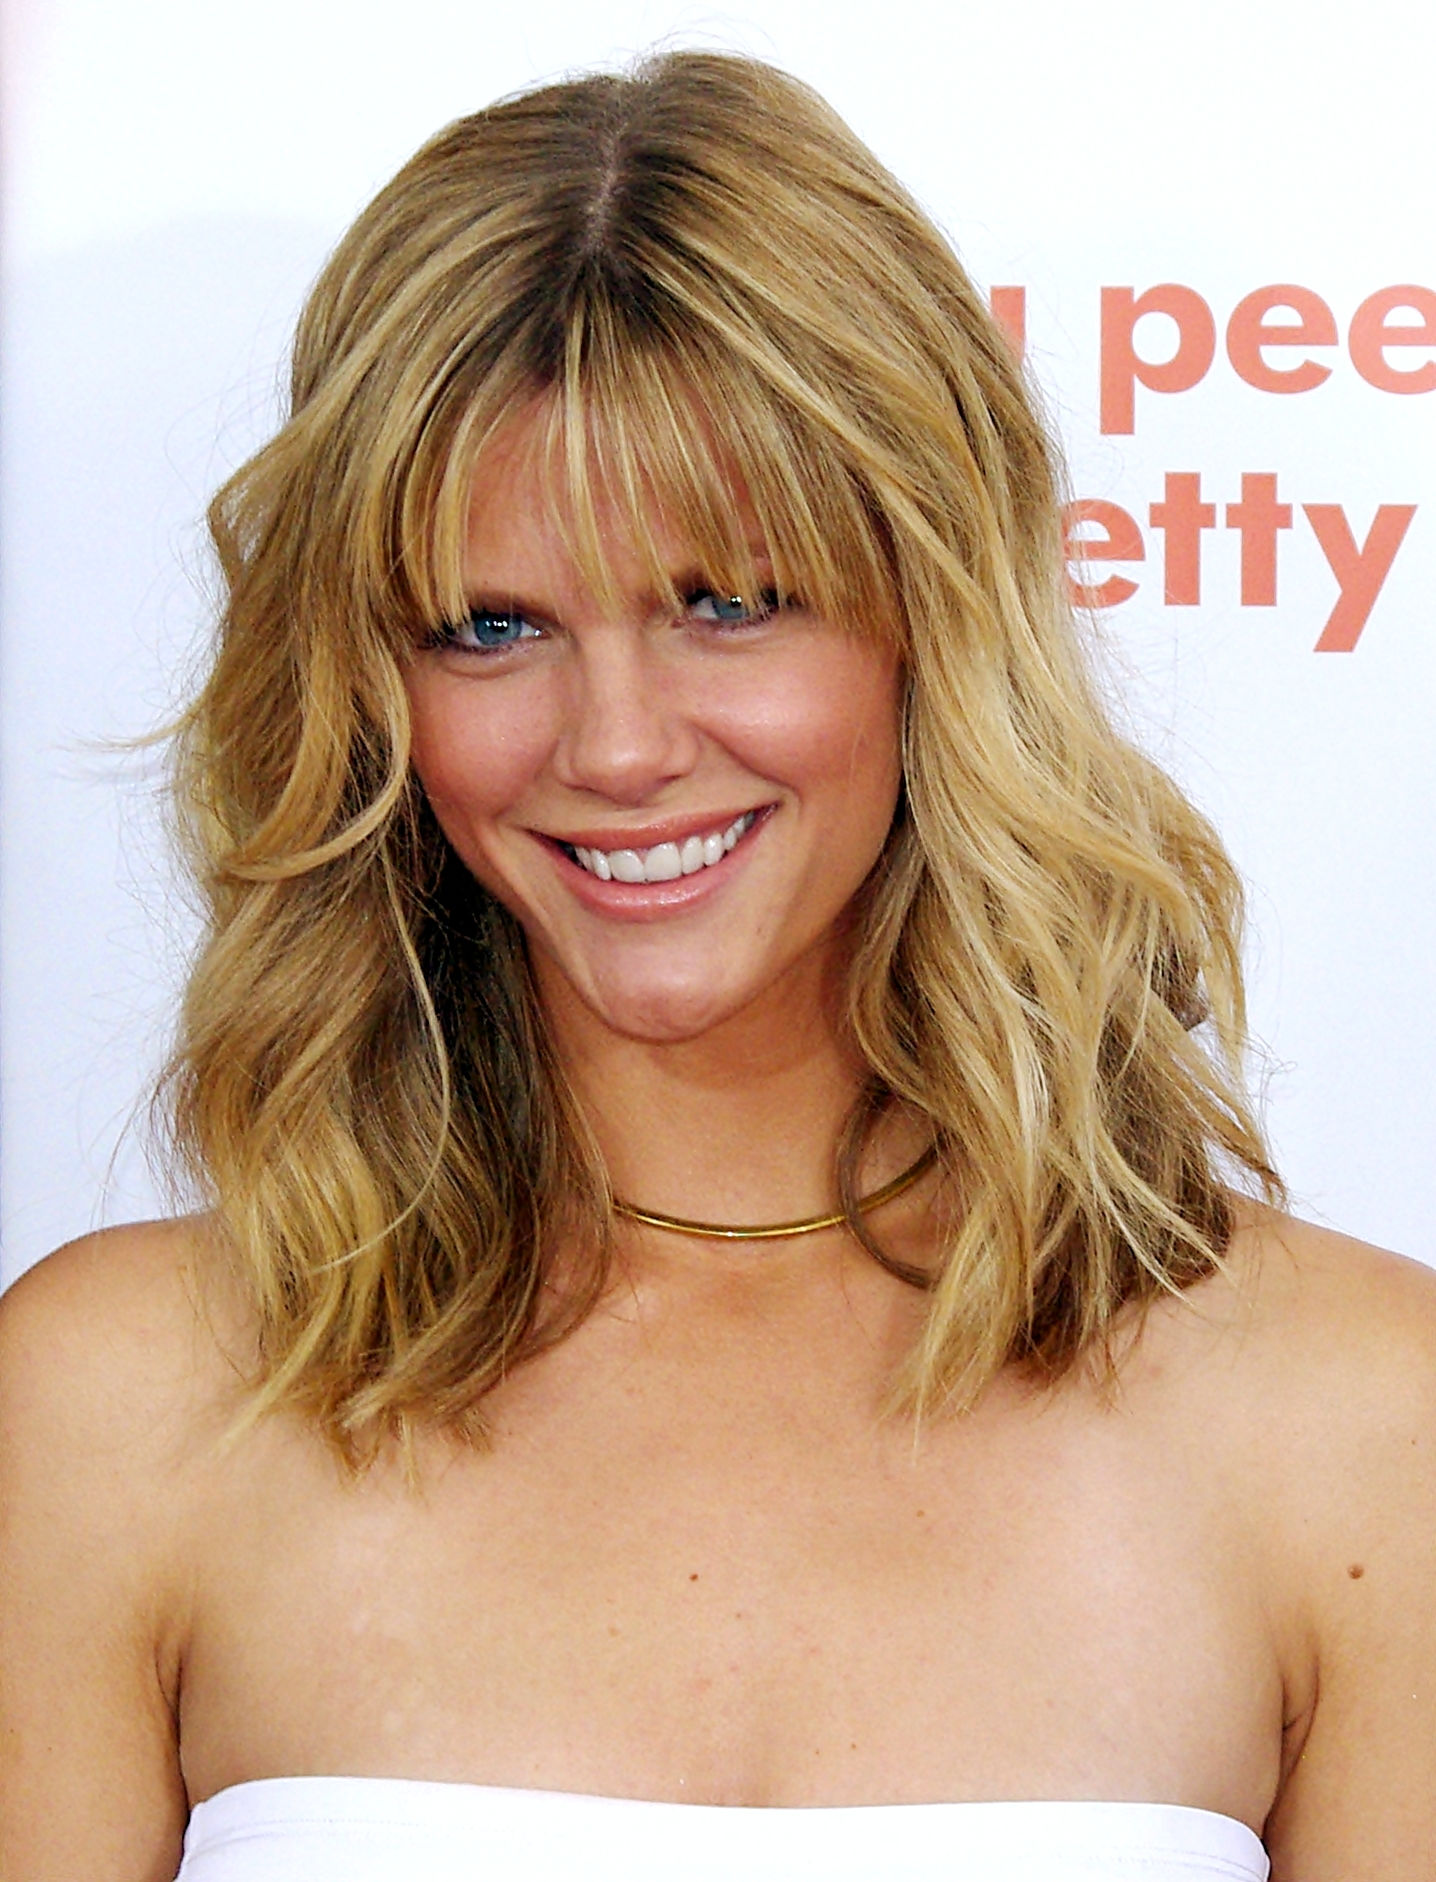 Photo of Brooklyn Decker: US photo model and actress